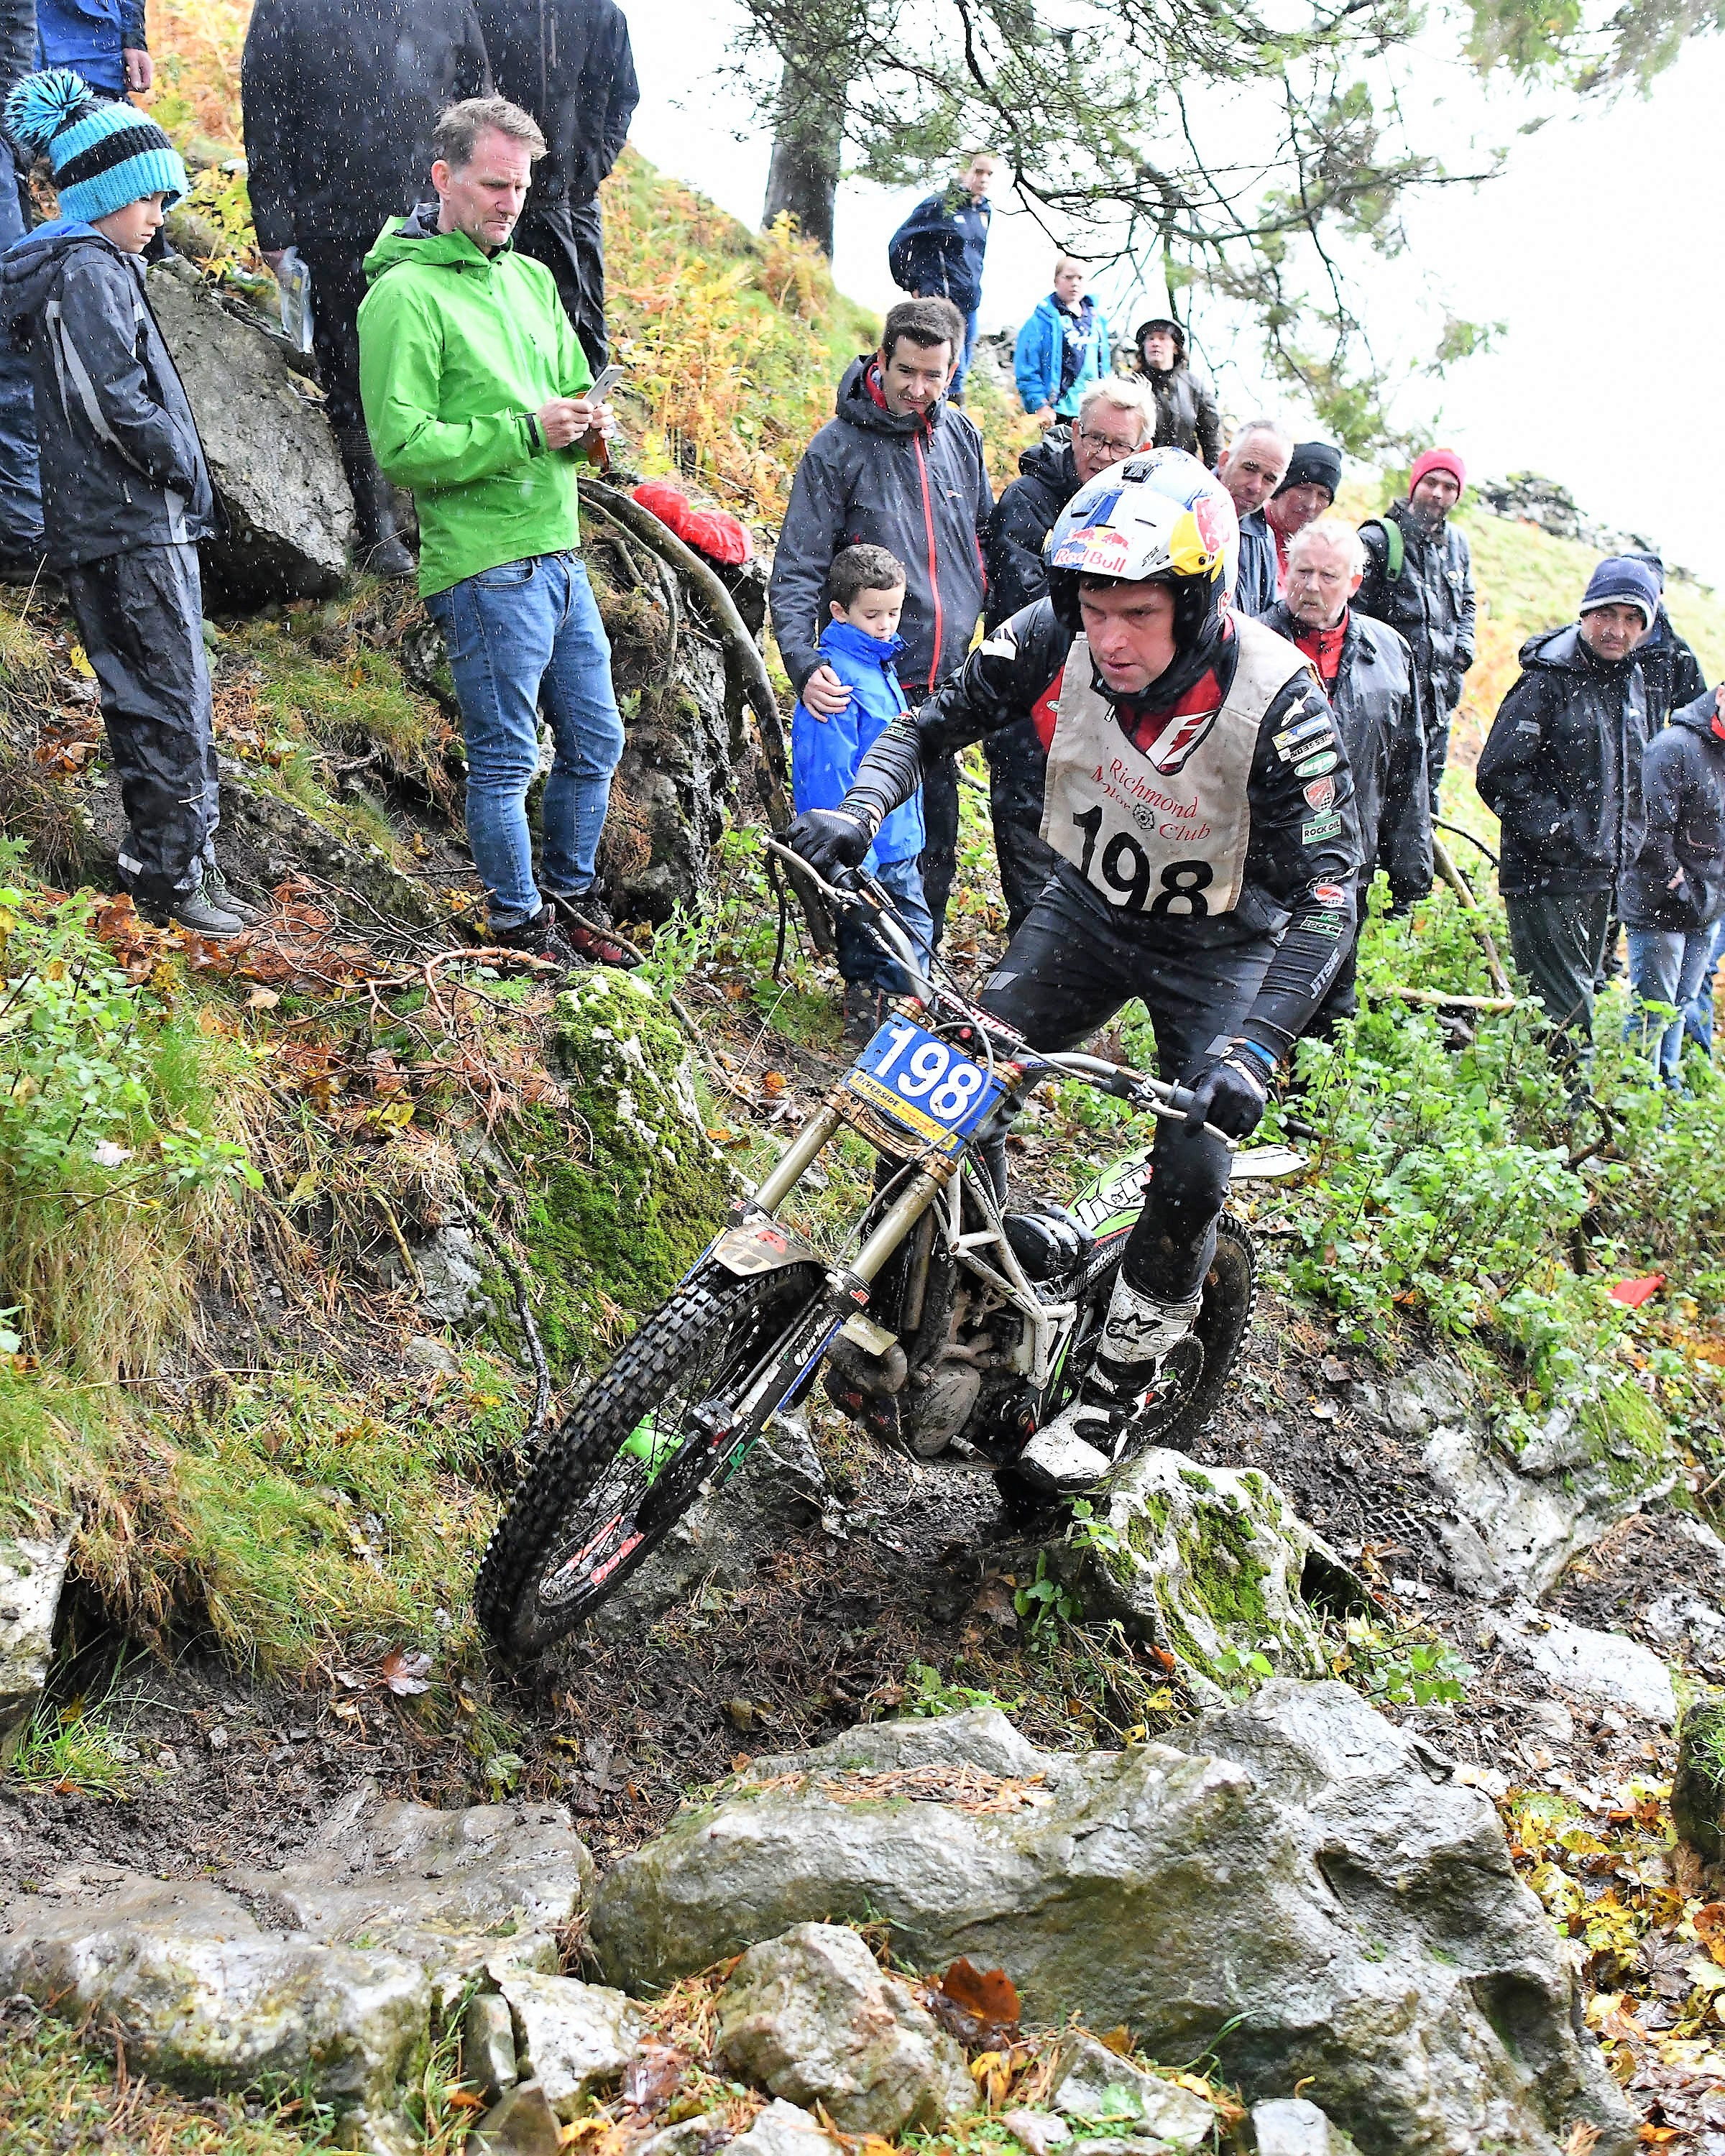 Dougie Lampkin.jpg  Pictures by Eric Kitchen